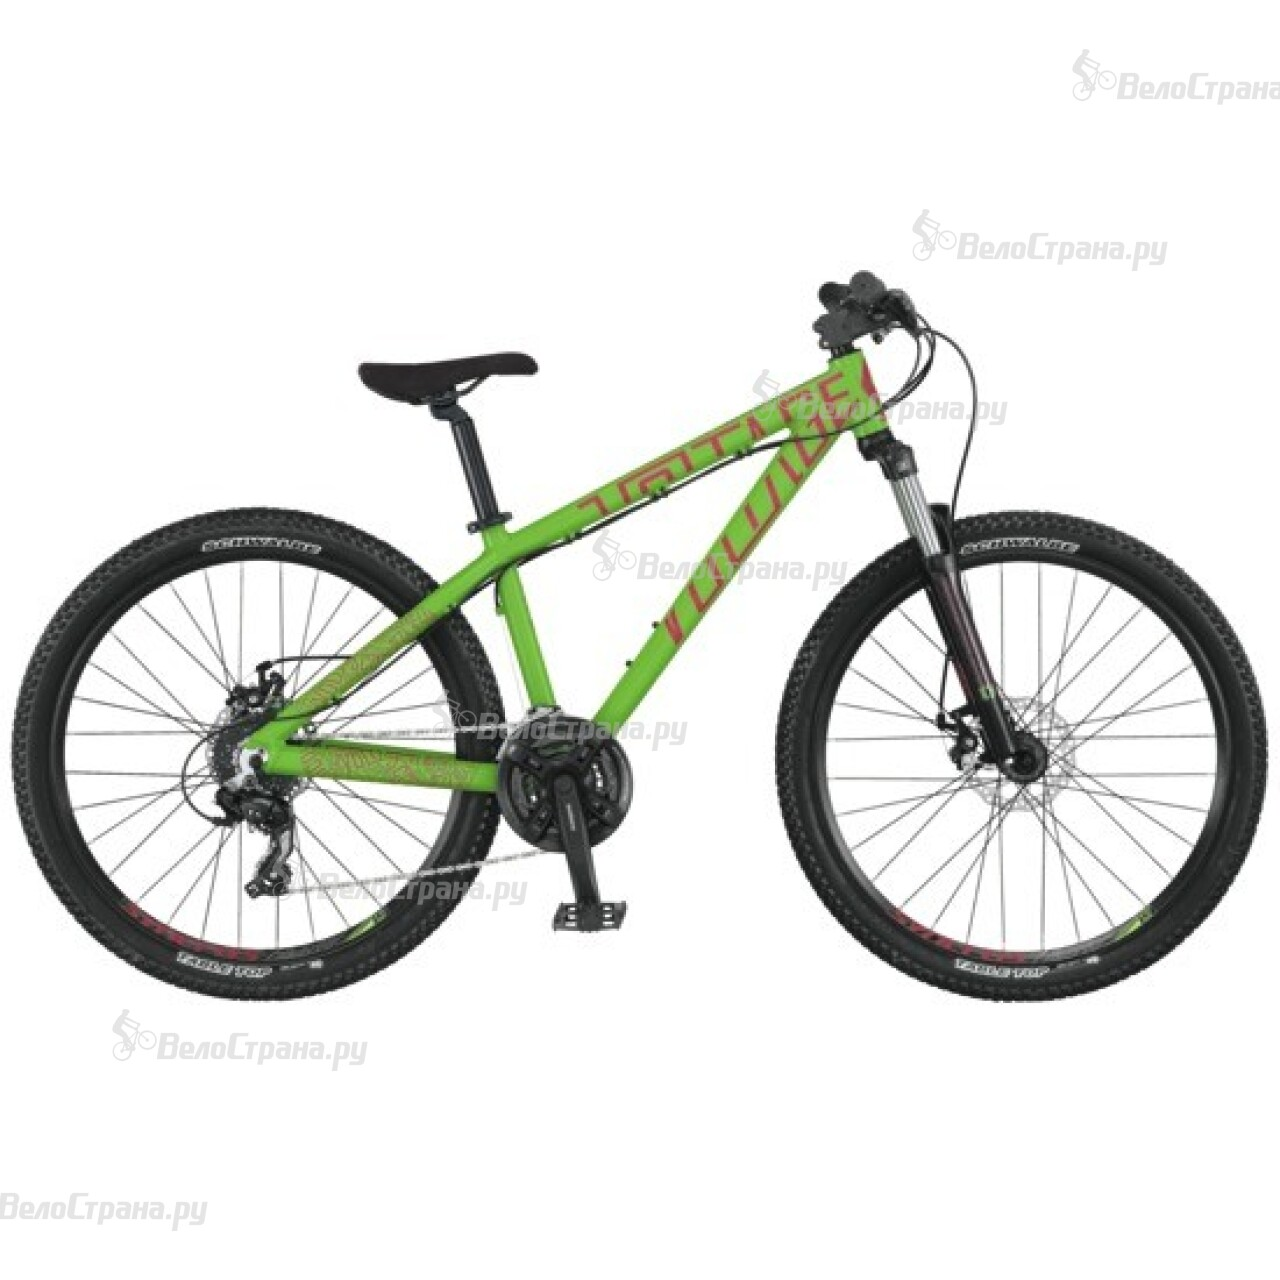 Велосипед Scott Voltage YZ 30 (2014) велосипед scott voltage yz 20 2014